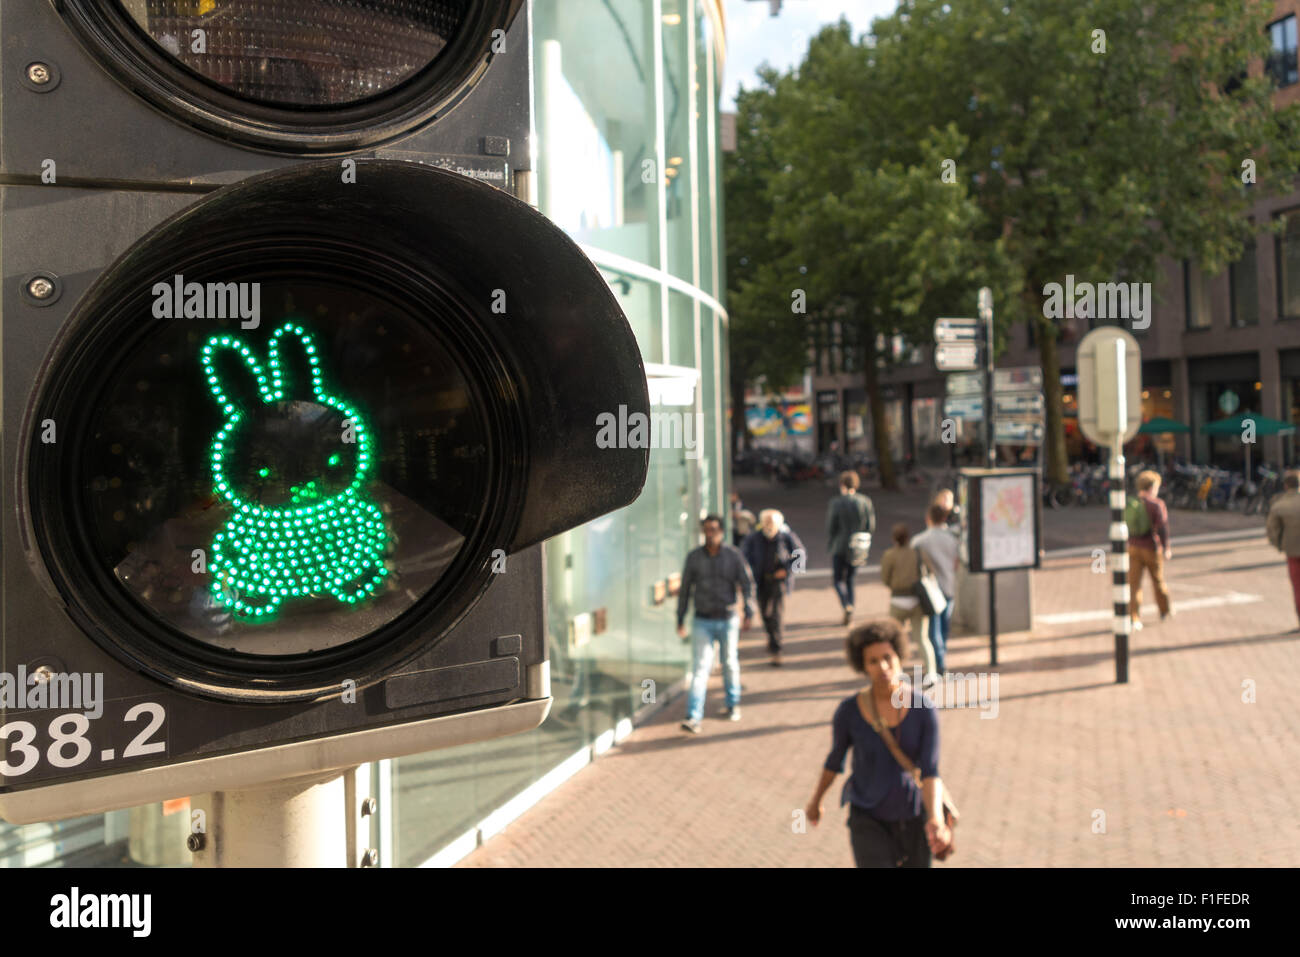 https://c7.alamy.com/comp/F1FEDR/utrecht-pedestrian-crossing-with-miffy-traffic-lights-F1FEDR.jpg